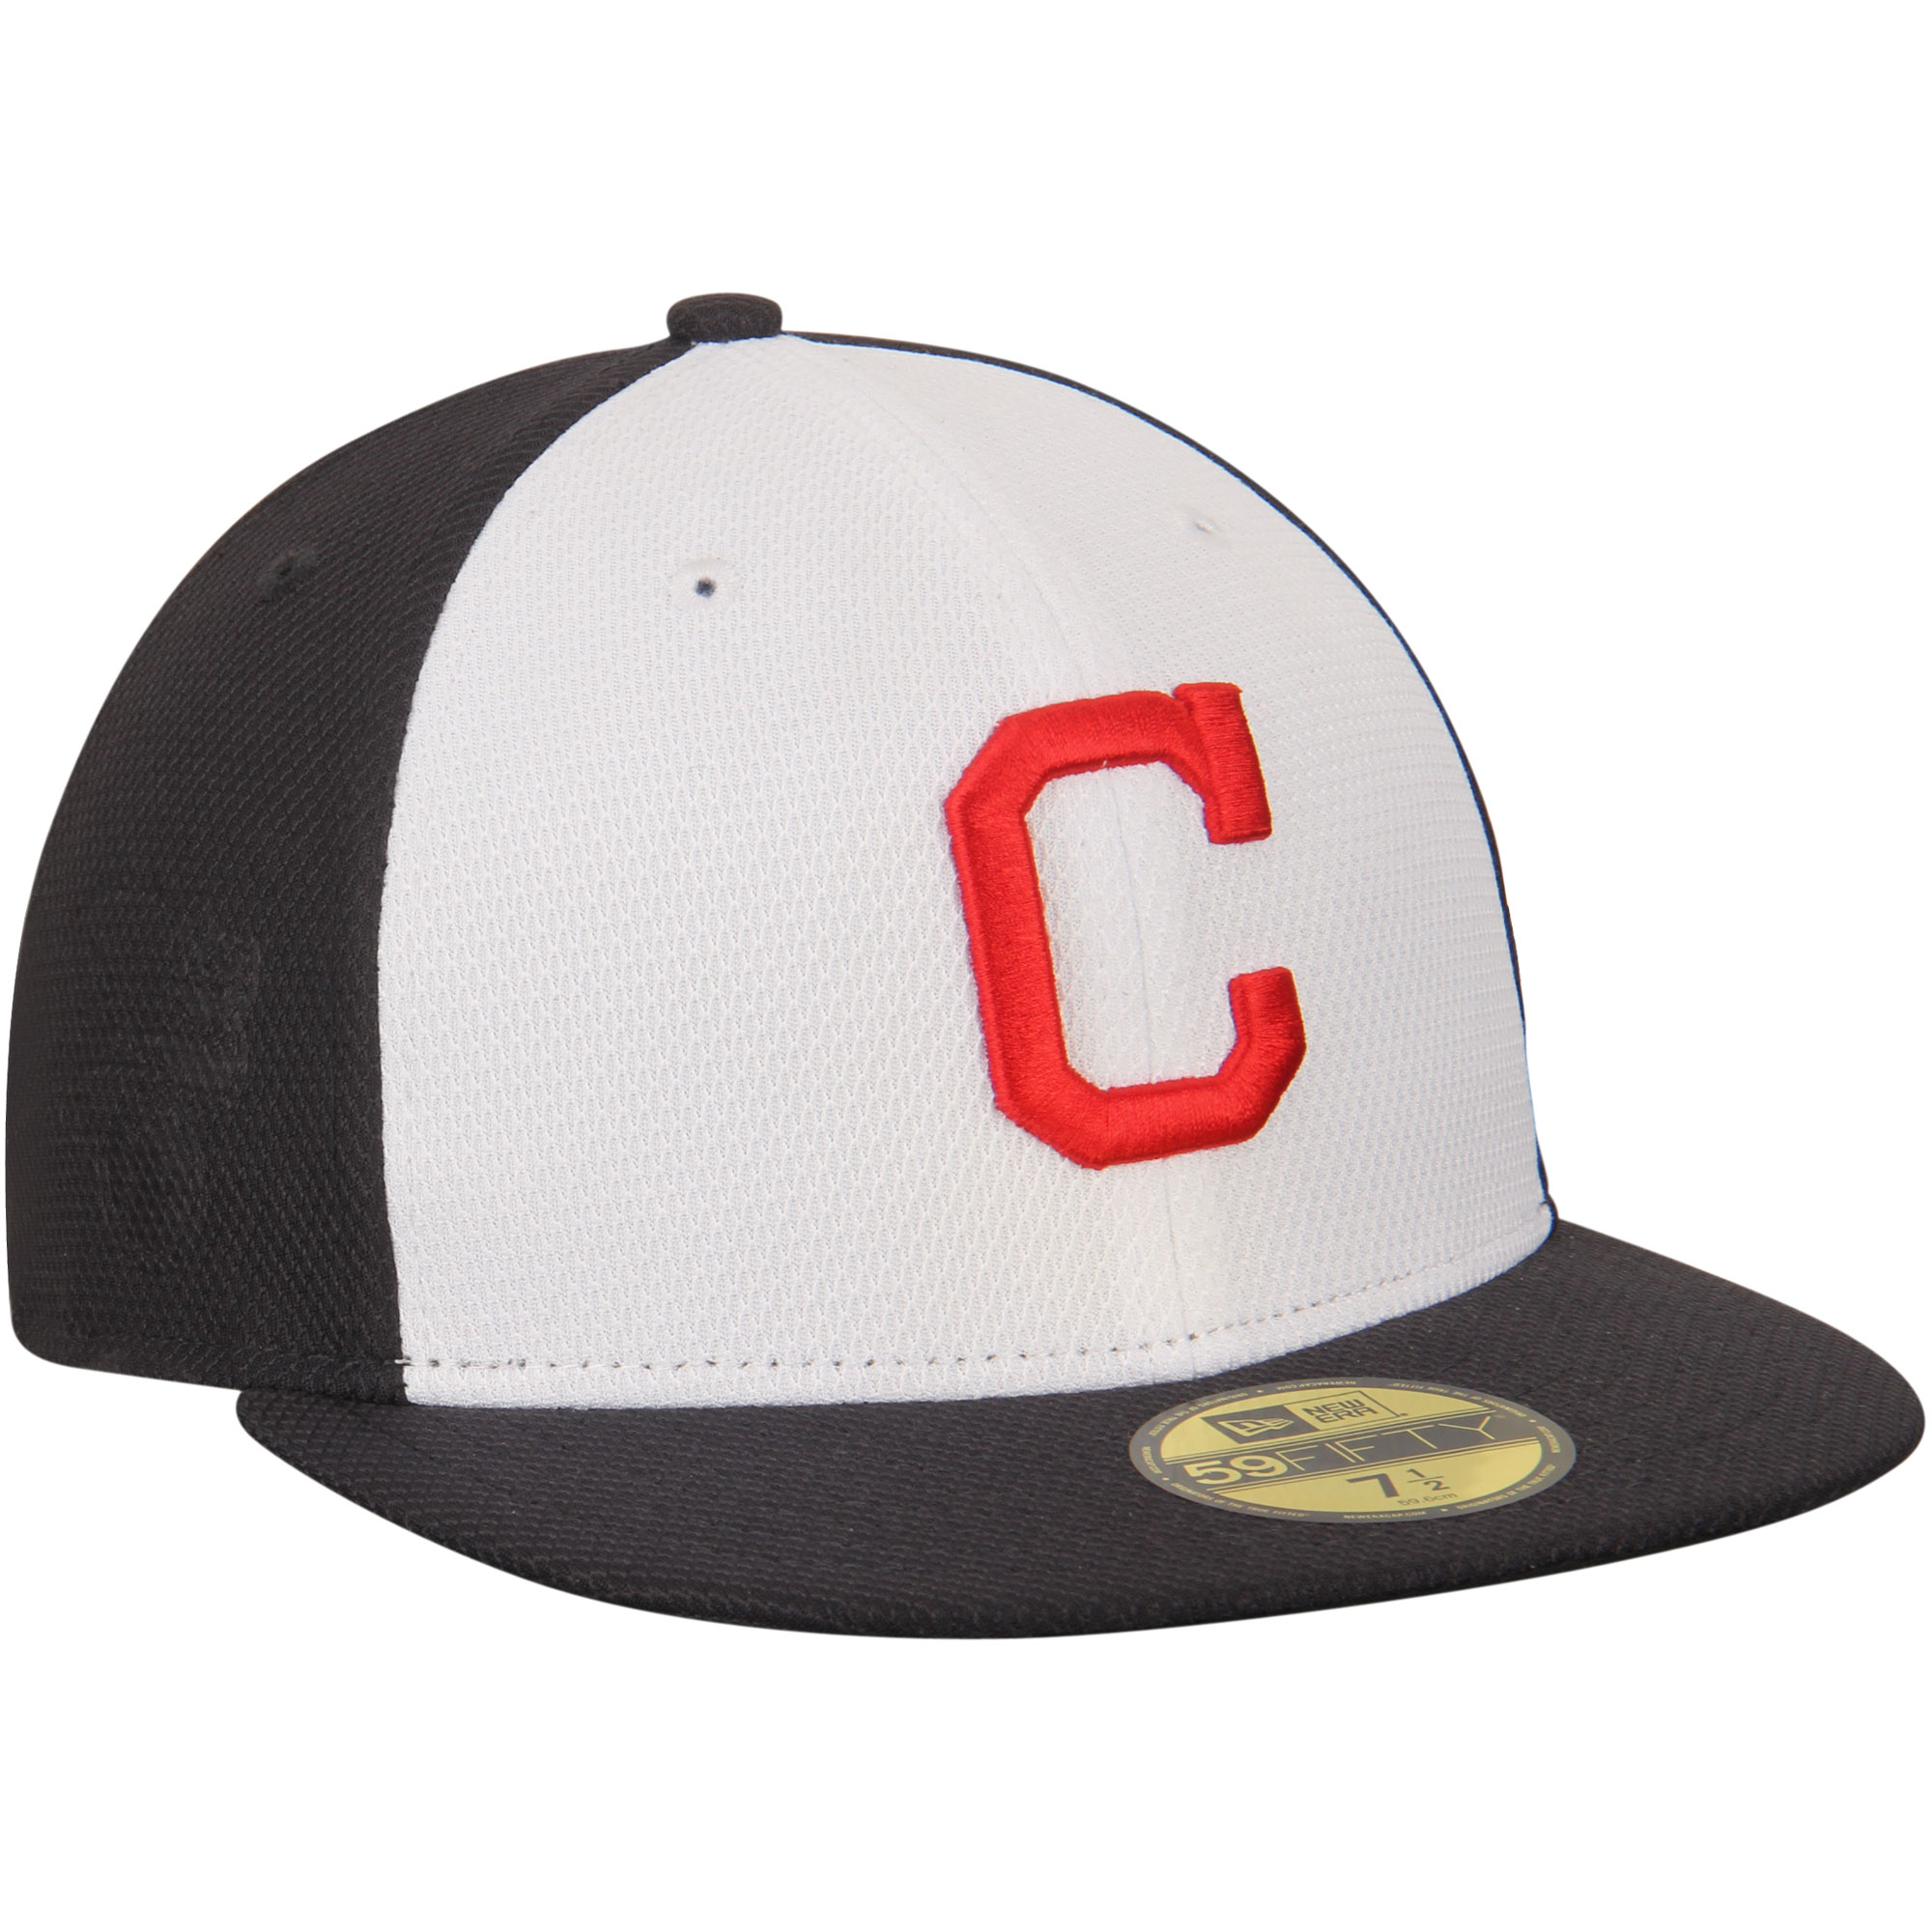 Cleveland Indians New Era Game Diamond Era 59FIFTY Fitted Hat - Navy/White